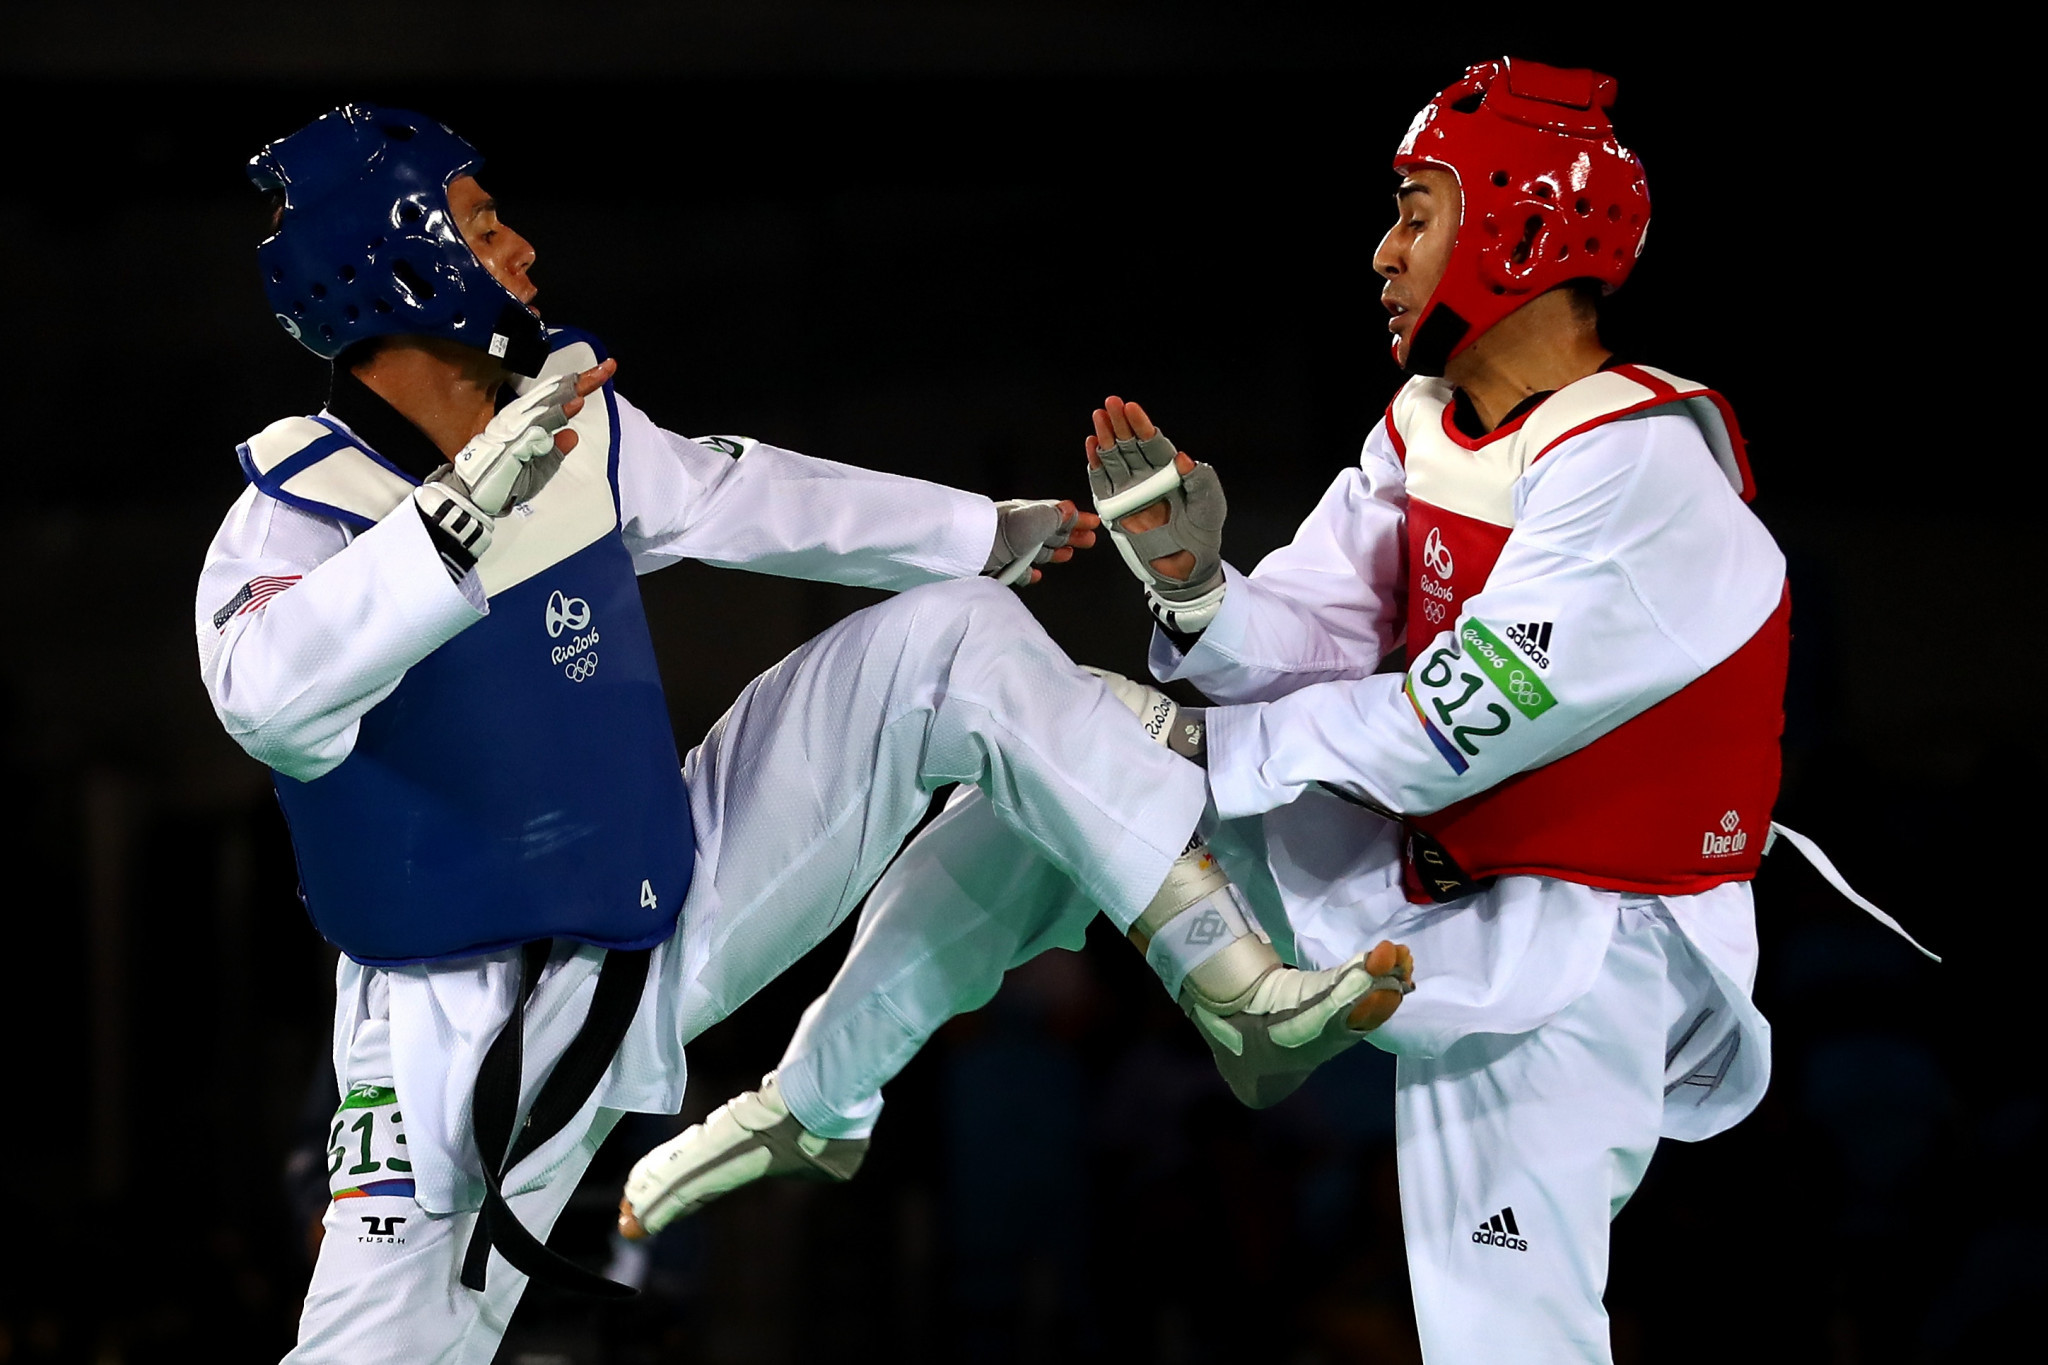 Double Olympic champion Lopez suspended as four file lawsuit accusing USOC and USA Taekwondo of sex trafficking